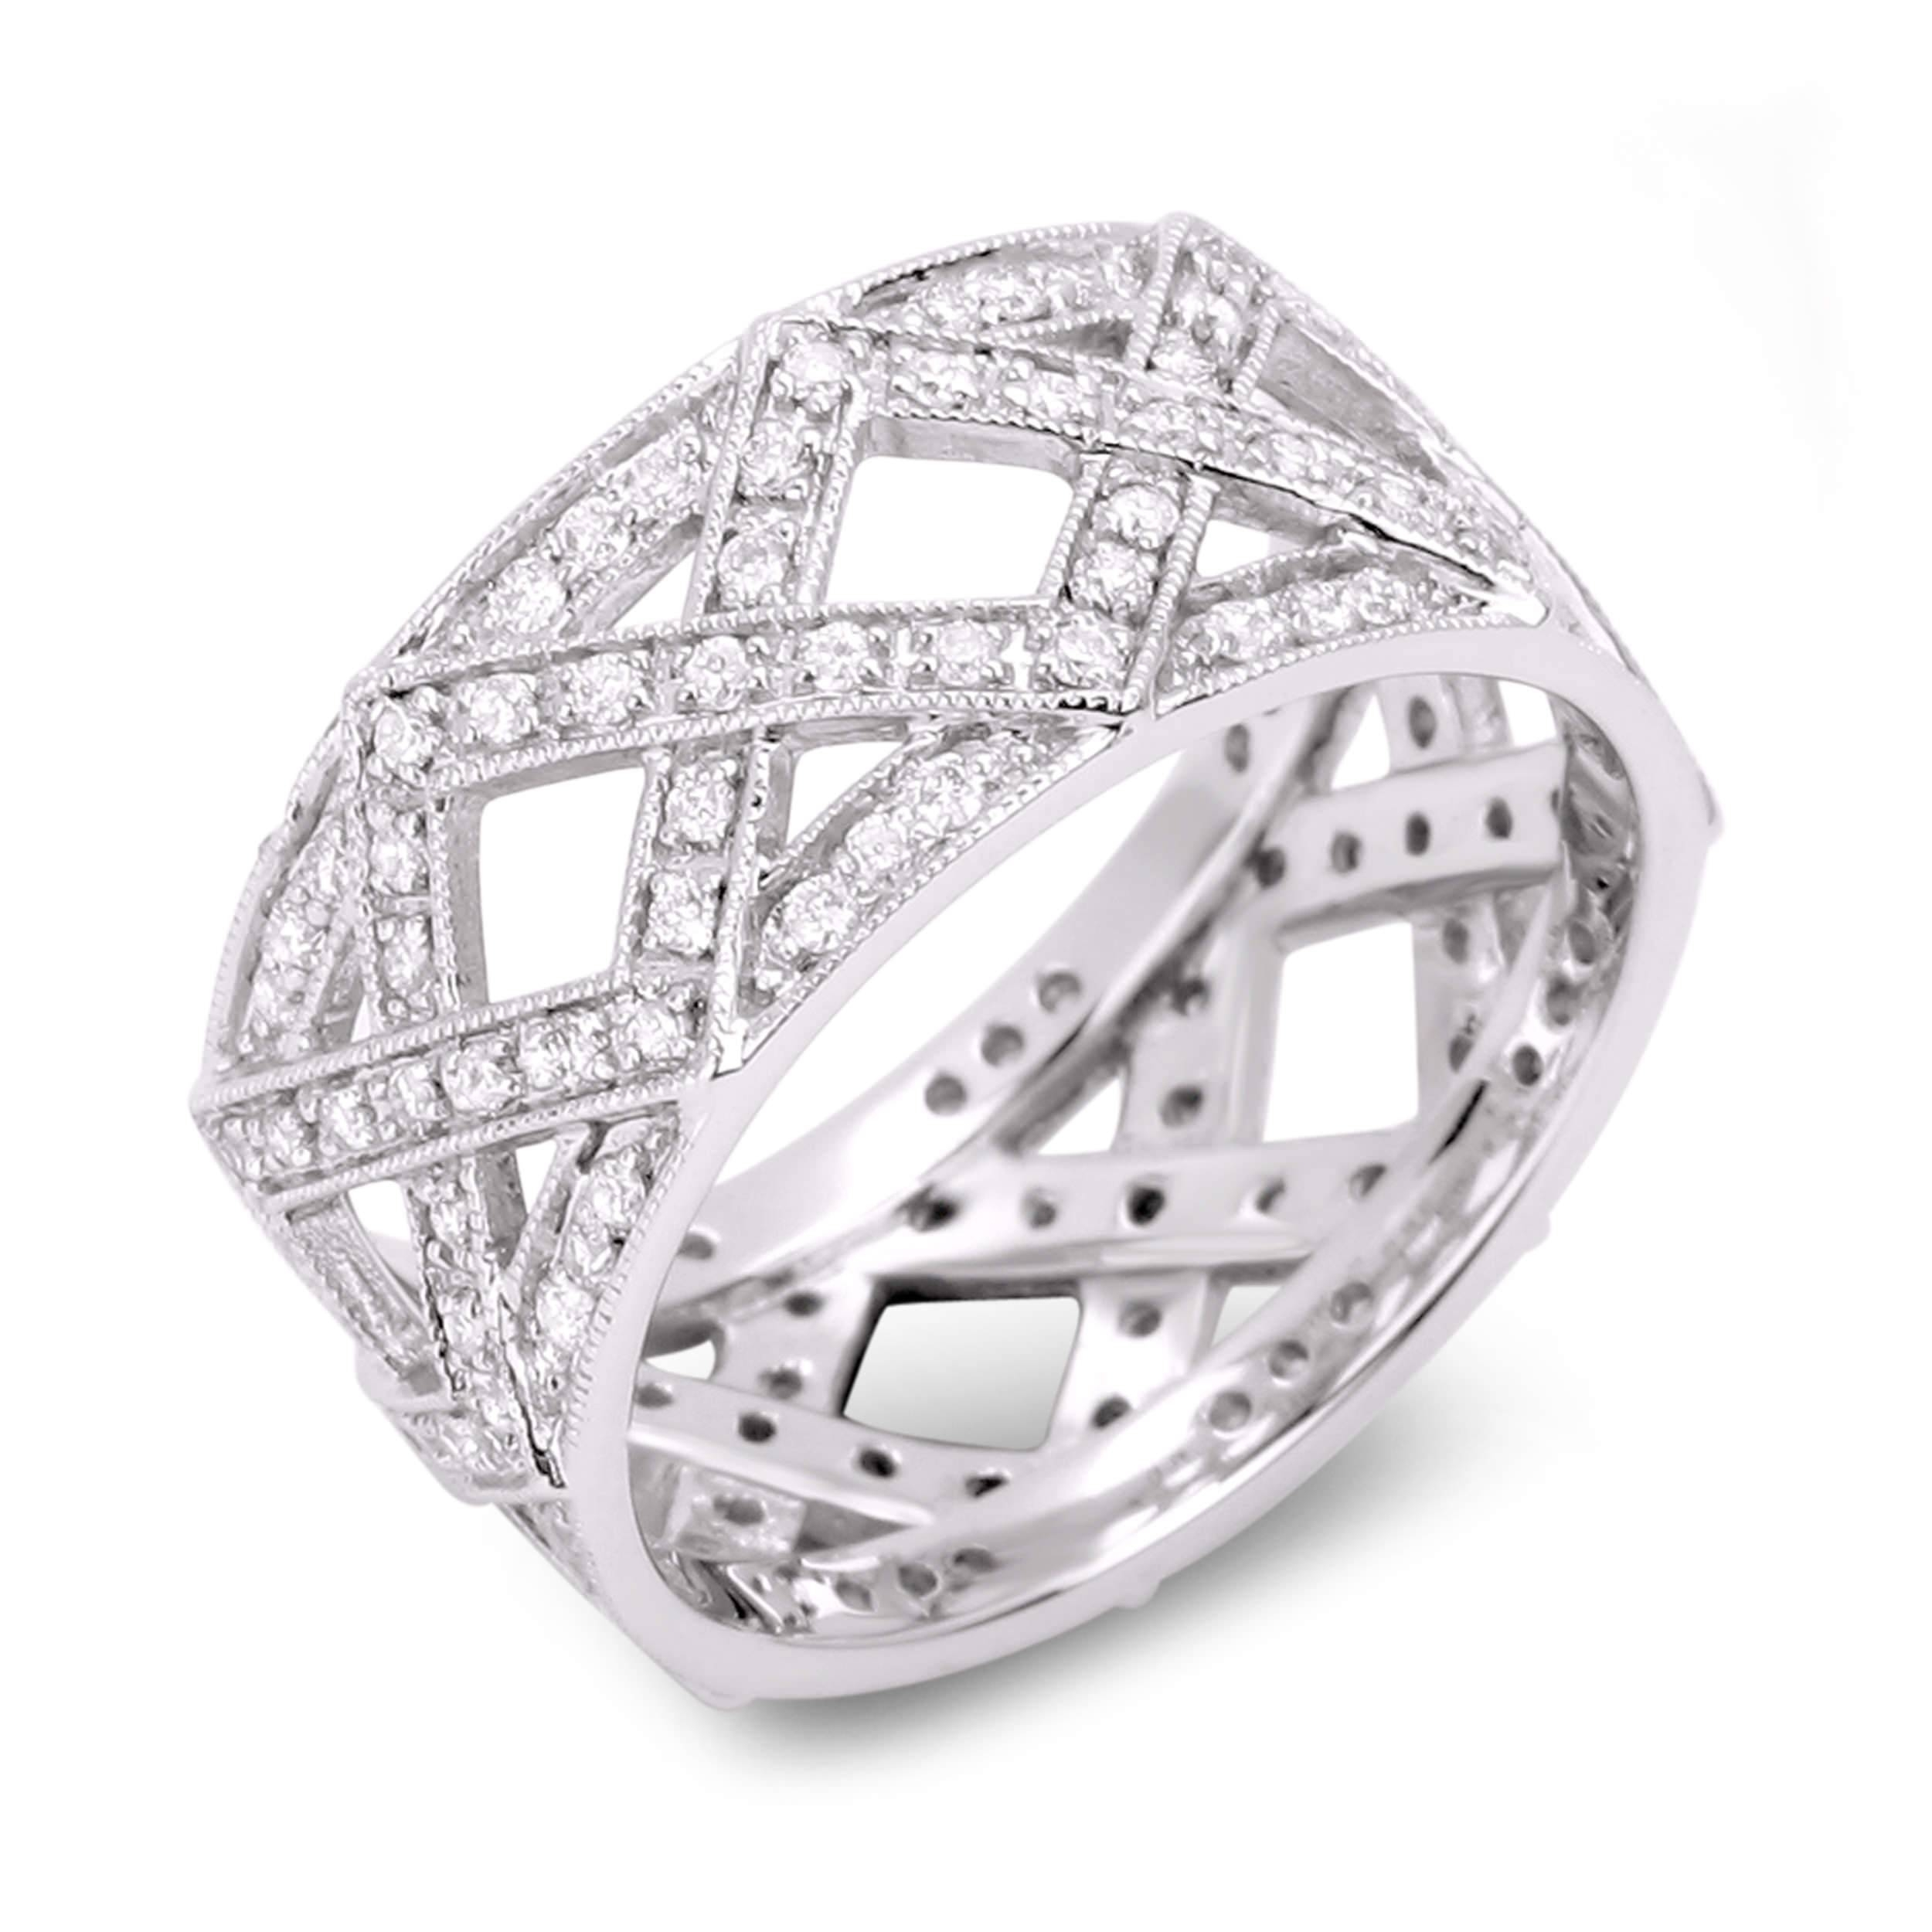 Diamond Anniversary Rings – Sgr804 – Anaya Fine Jewellery Collection For Latest Silver Anniversary Rings (View 8 of 25)